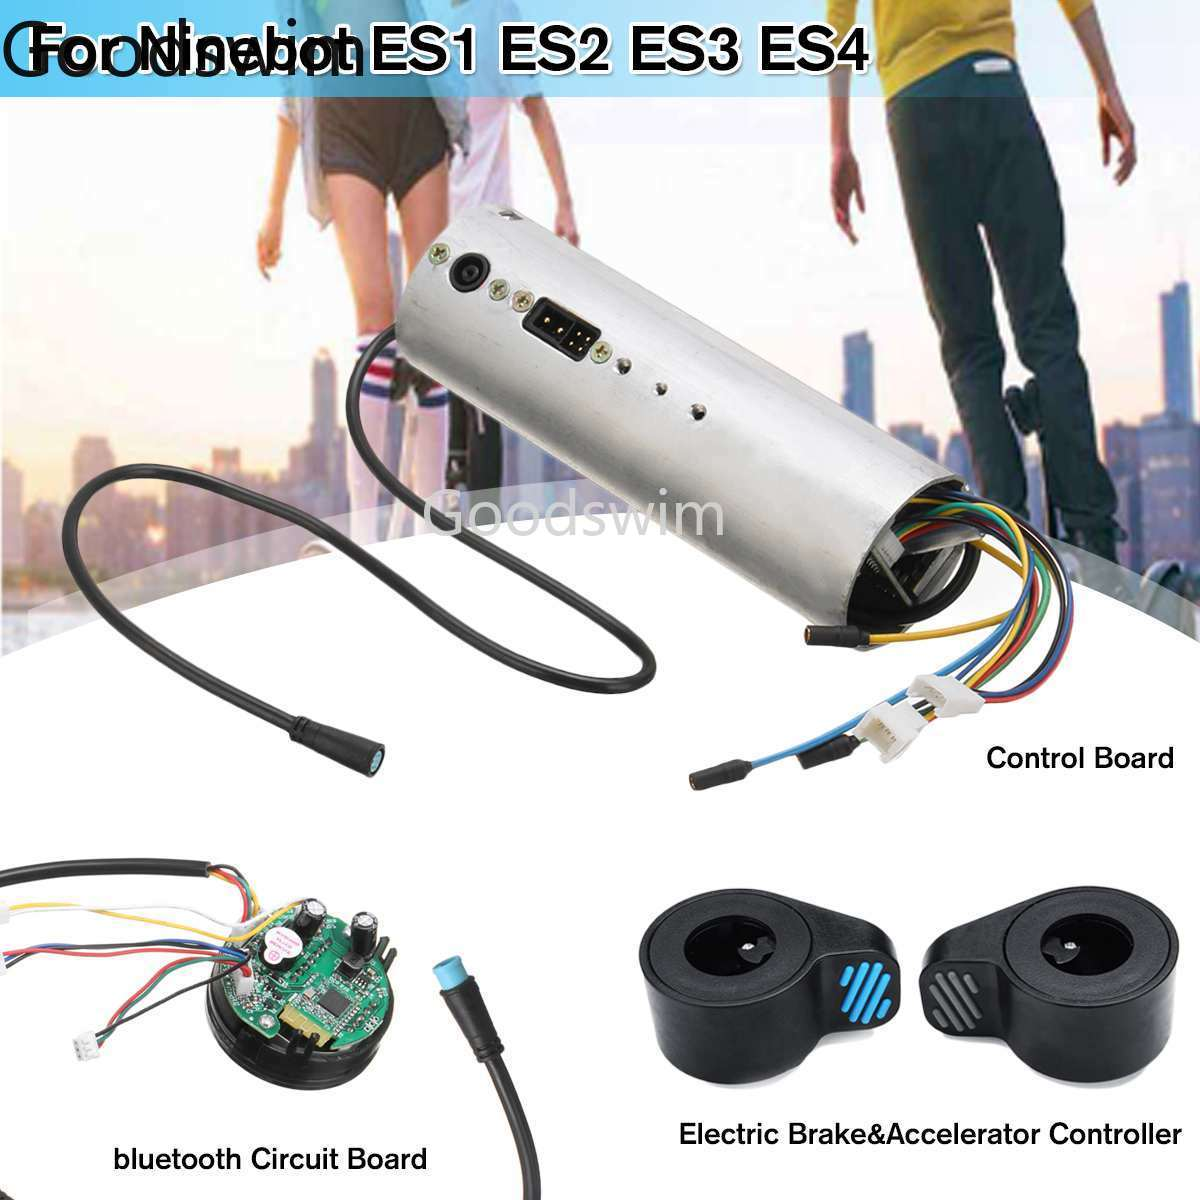 Electric Scooter Control Board Bluetooth Circuit Board Motherboard  Controller for Ninebot ES1 ES2 ES3 ES4 Activated Dashboard